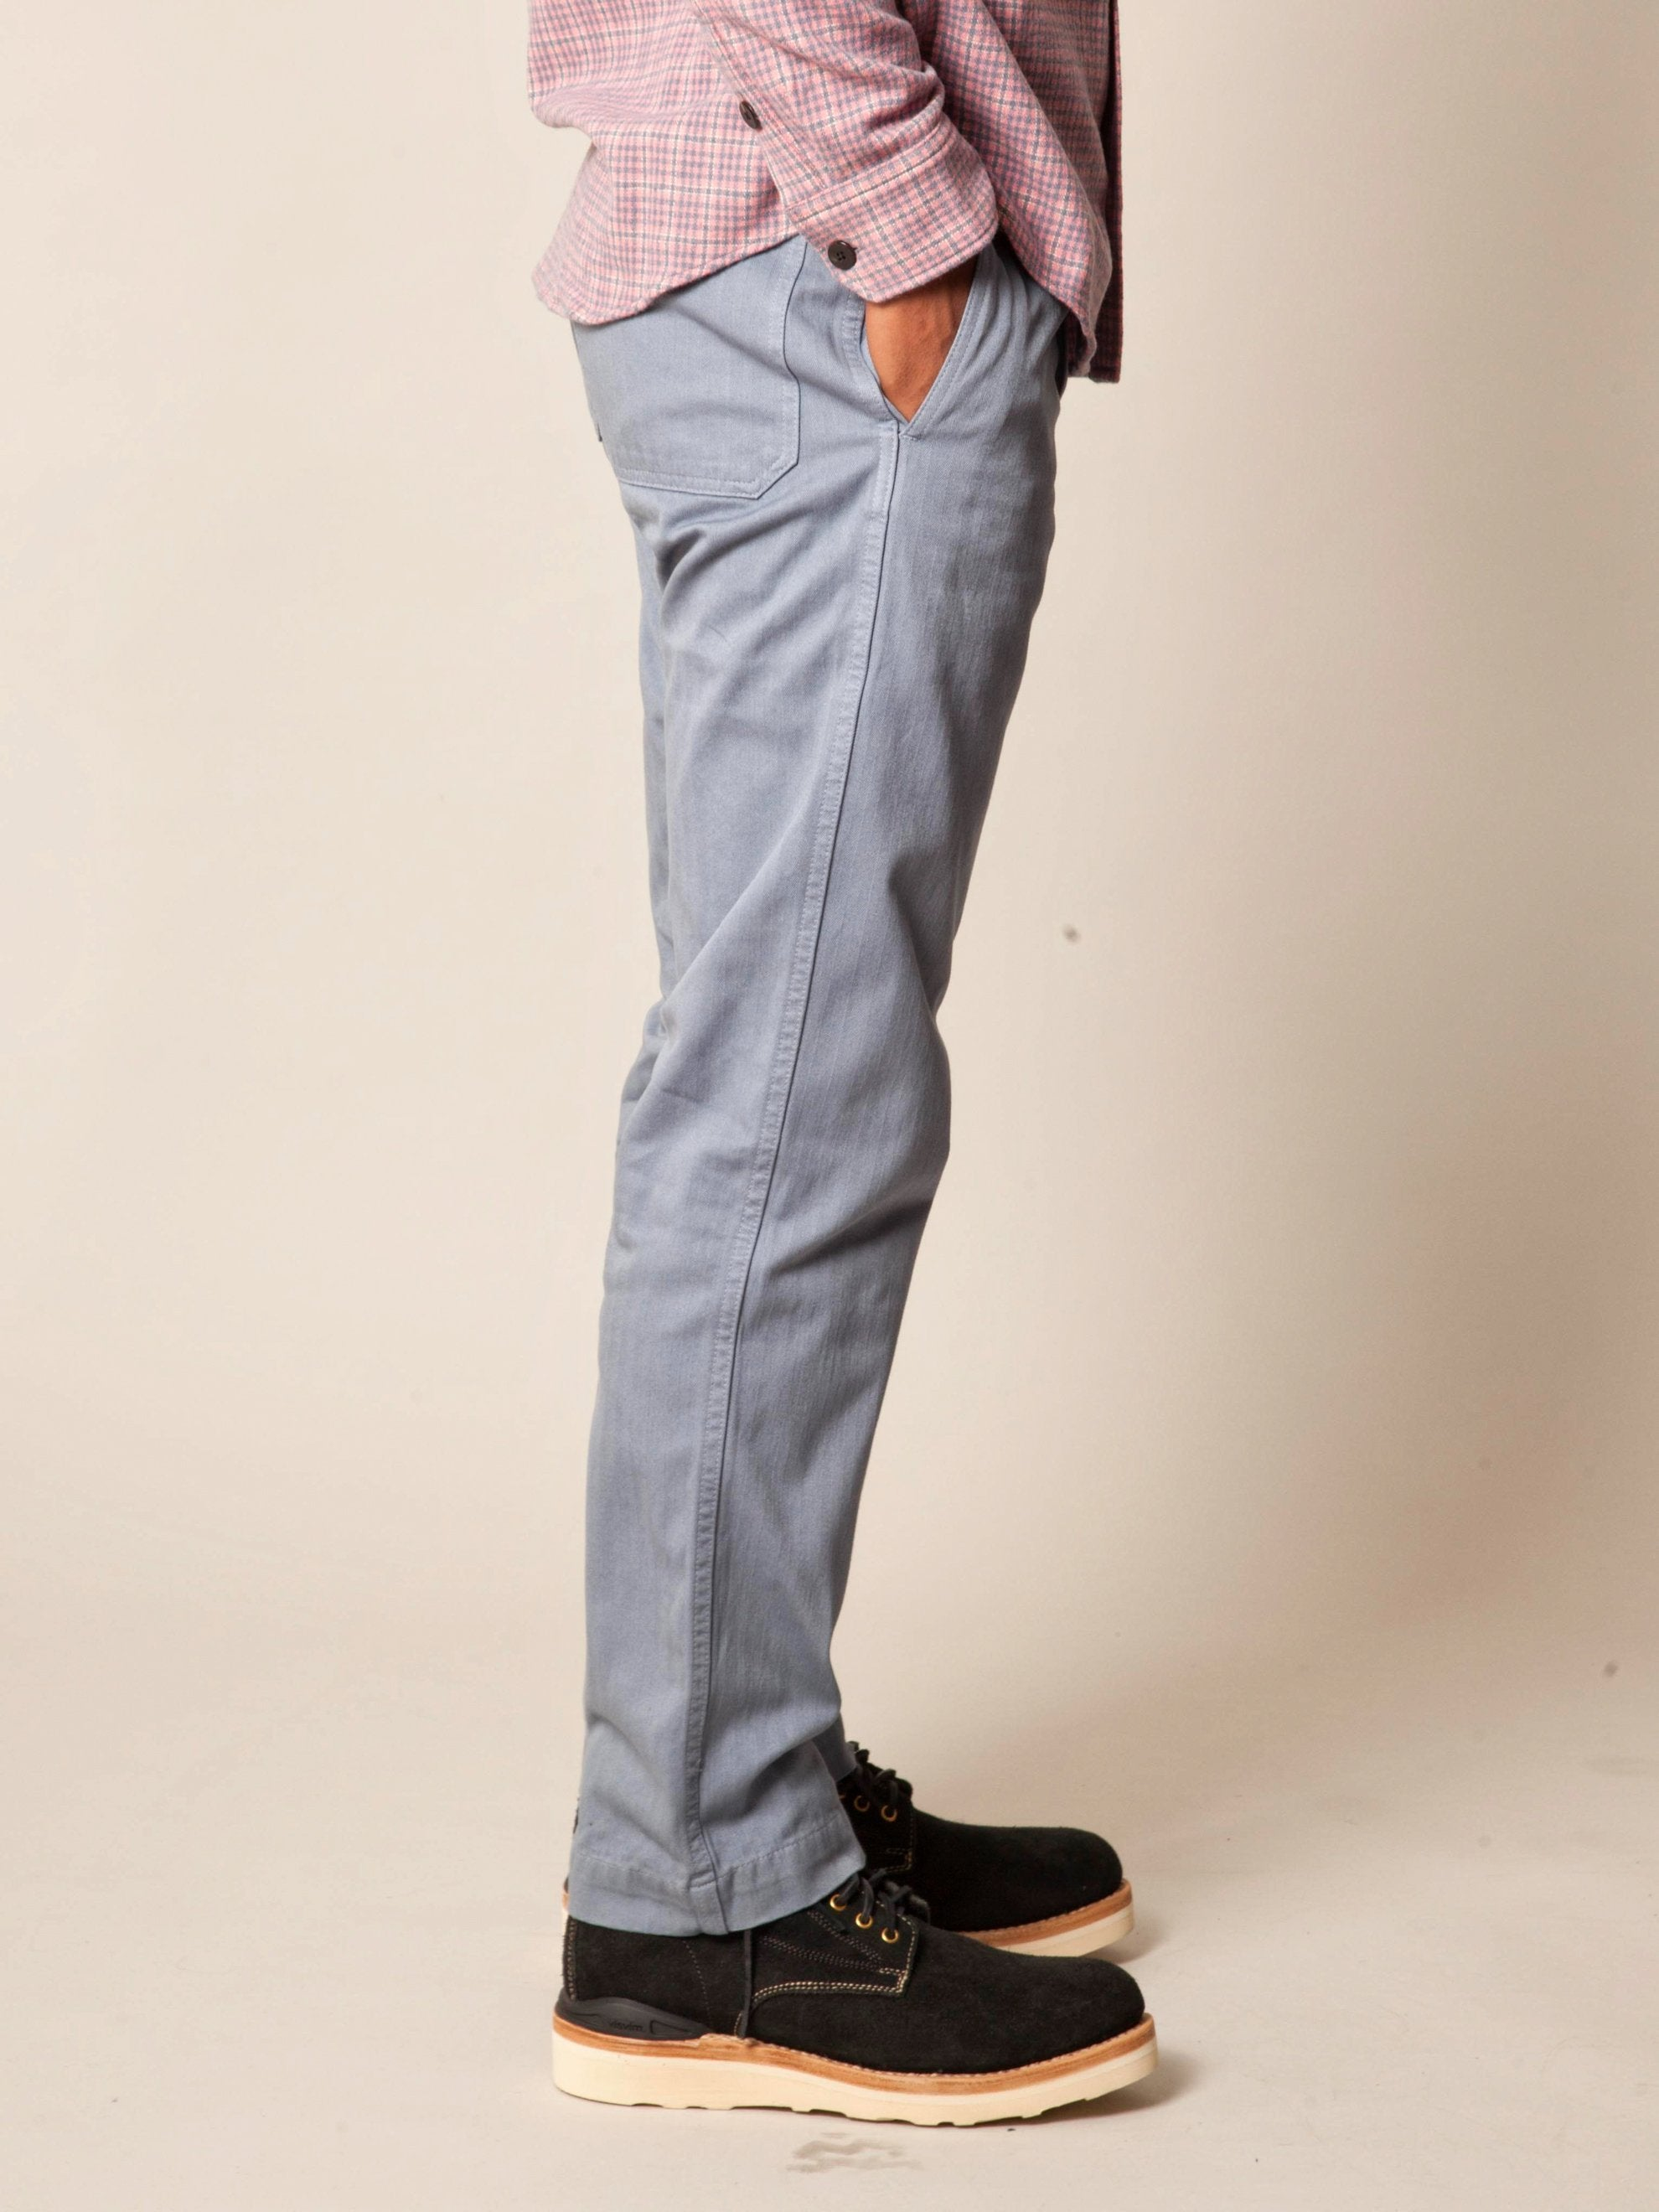 Grey Pastoral Pants Herringbone 4